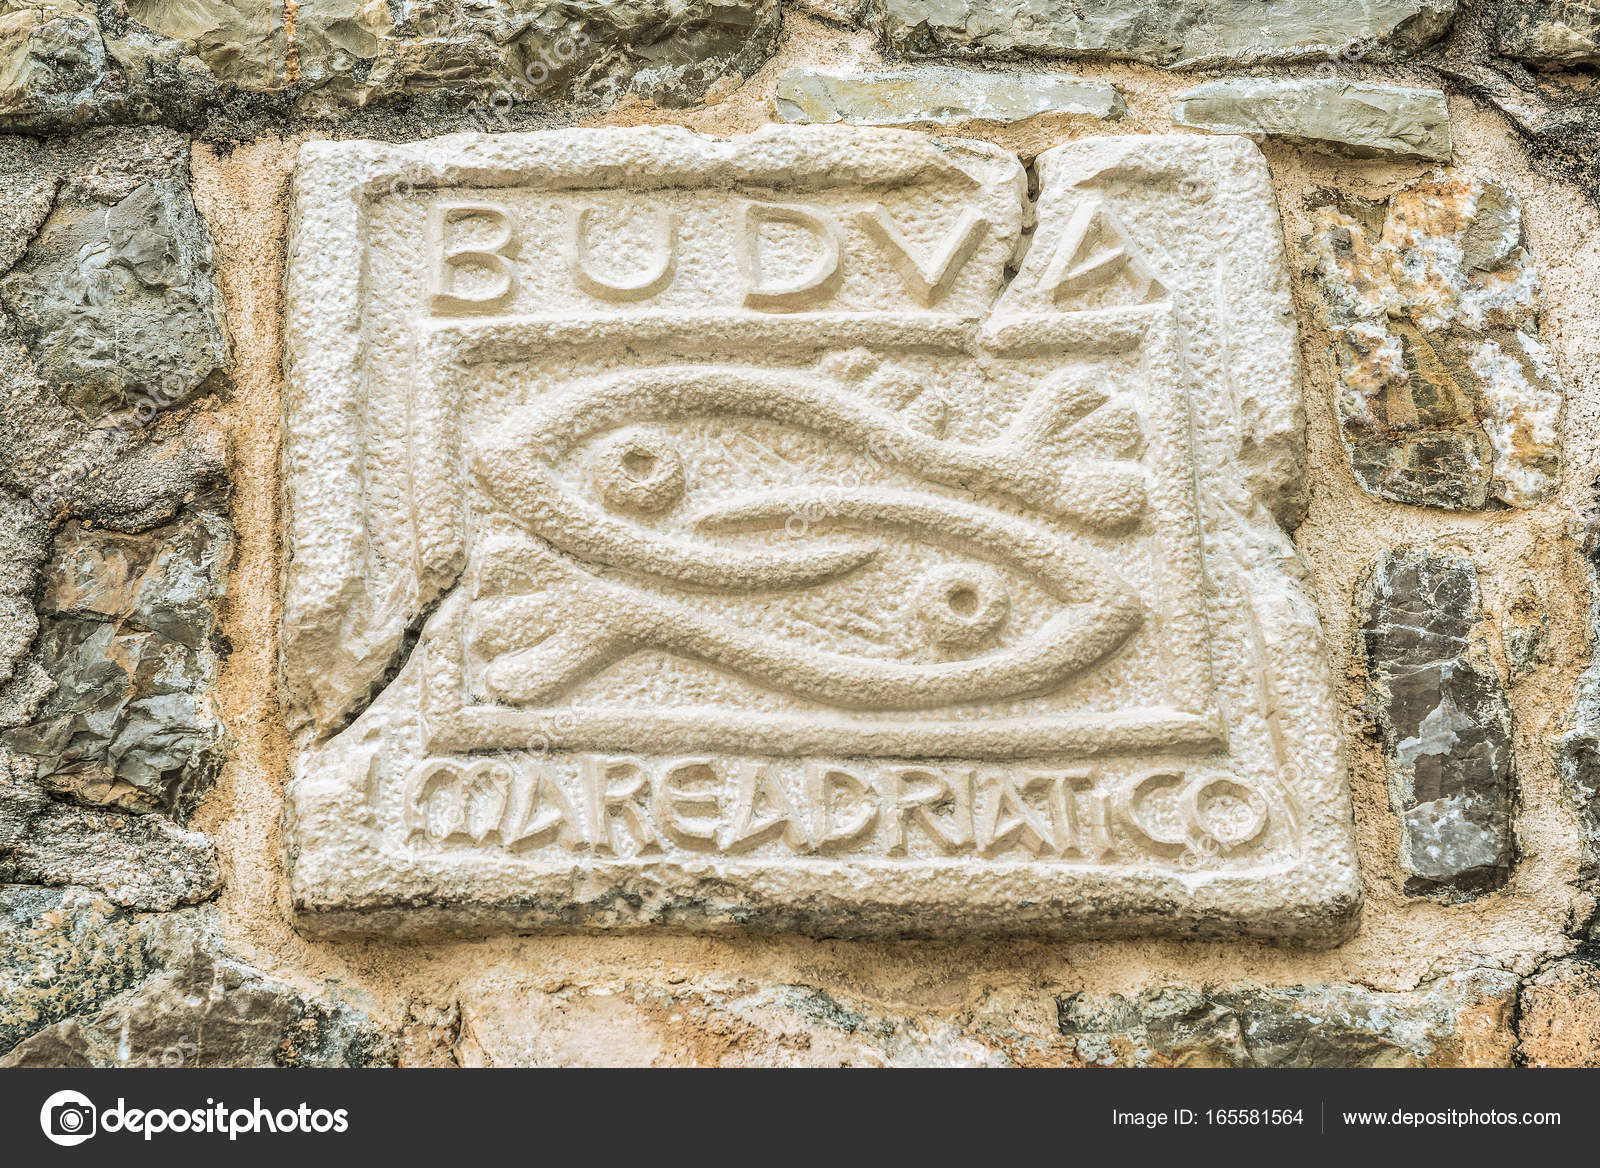 Two Fish A Symbol Of The City Of Budva Montenegro The Historical